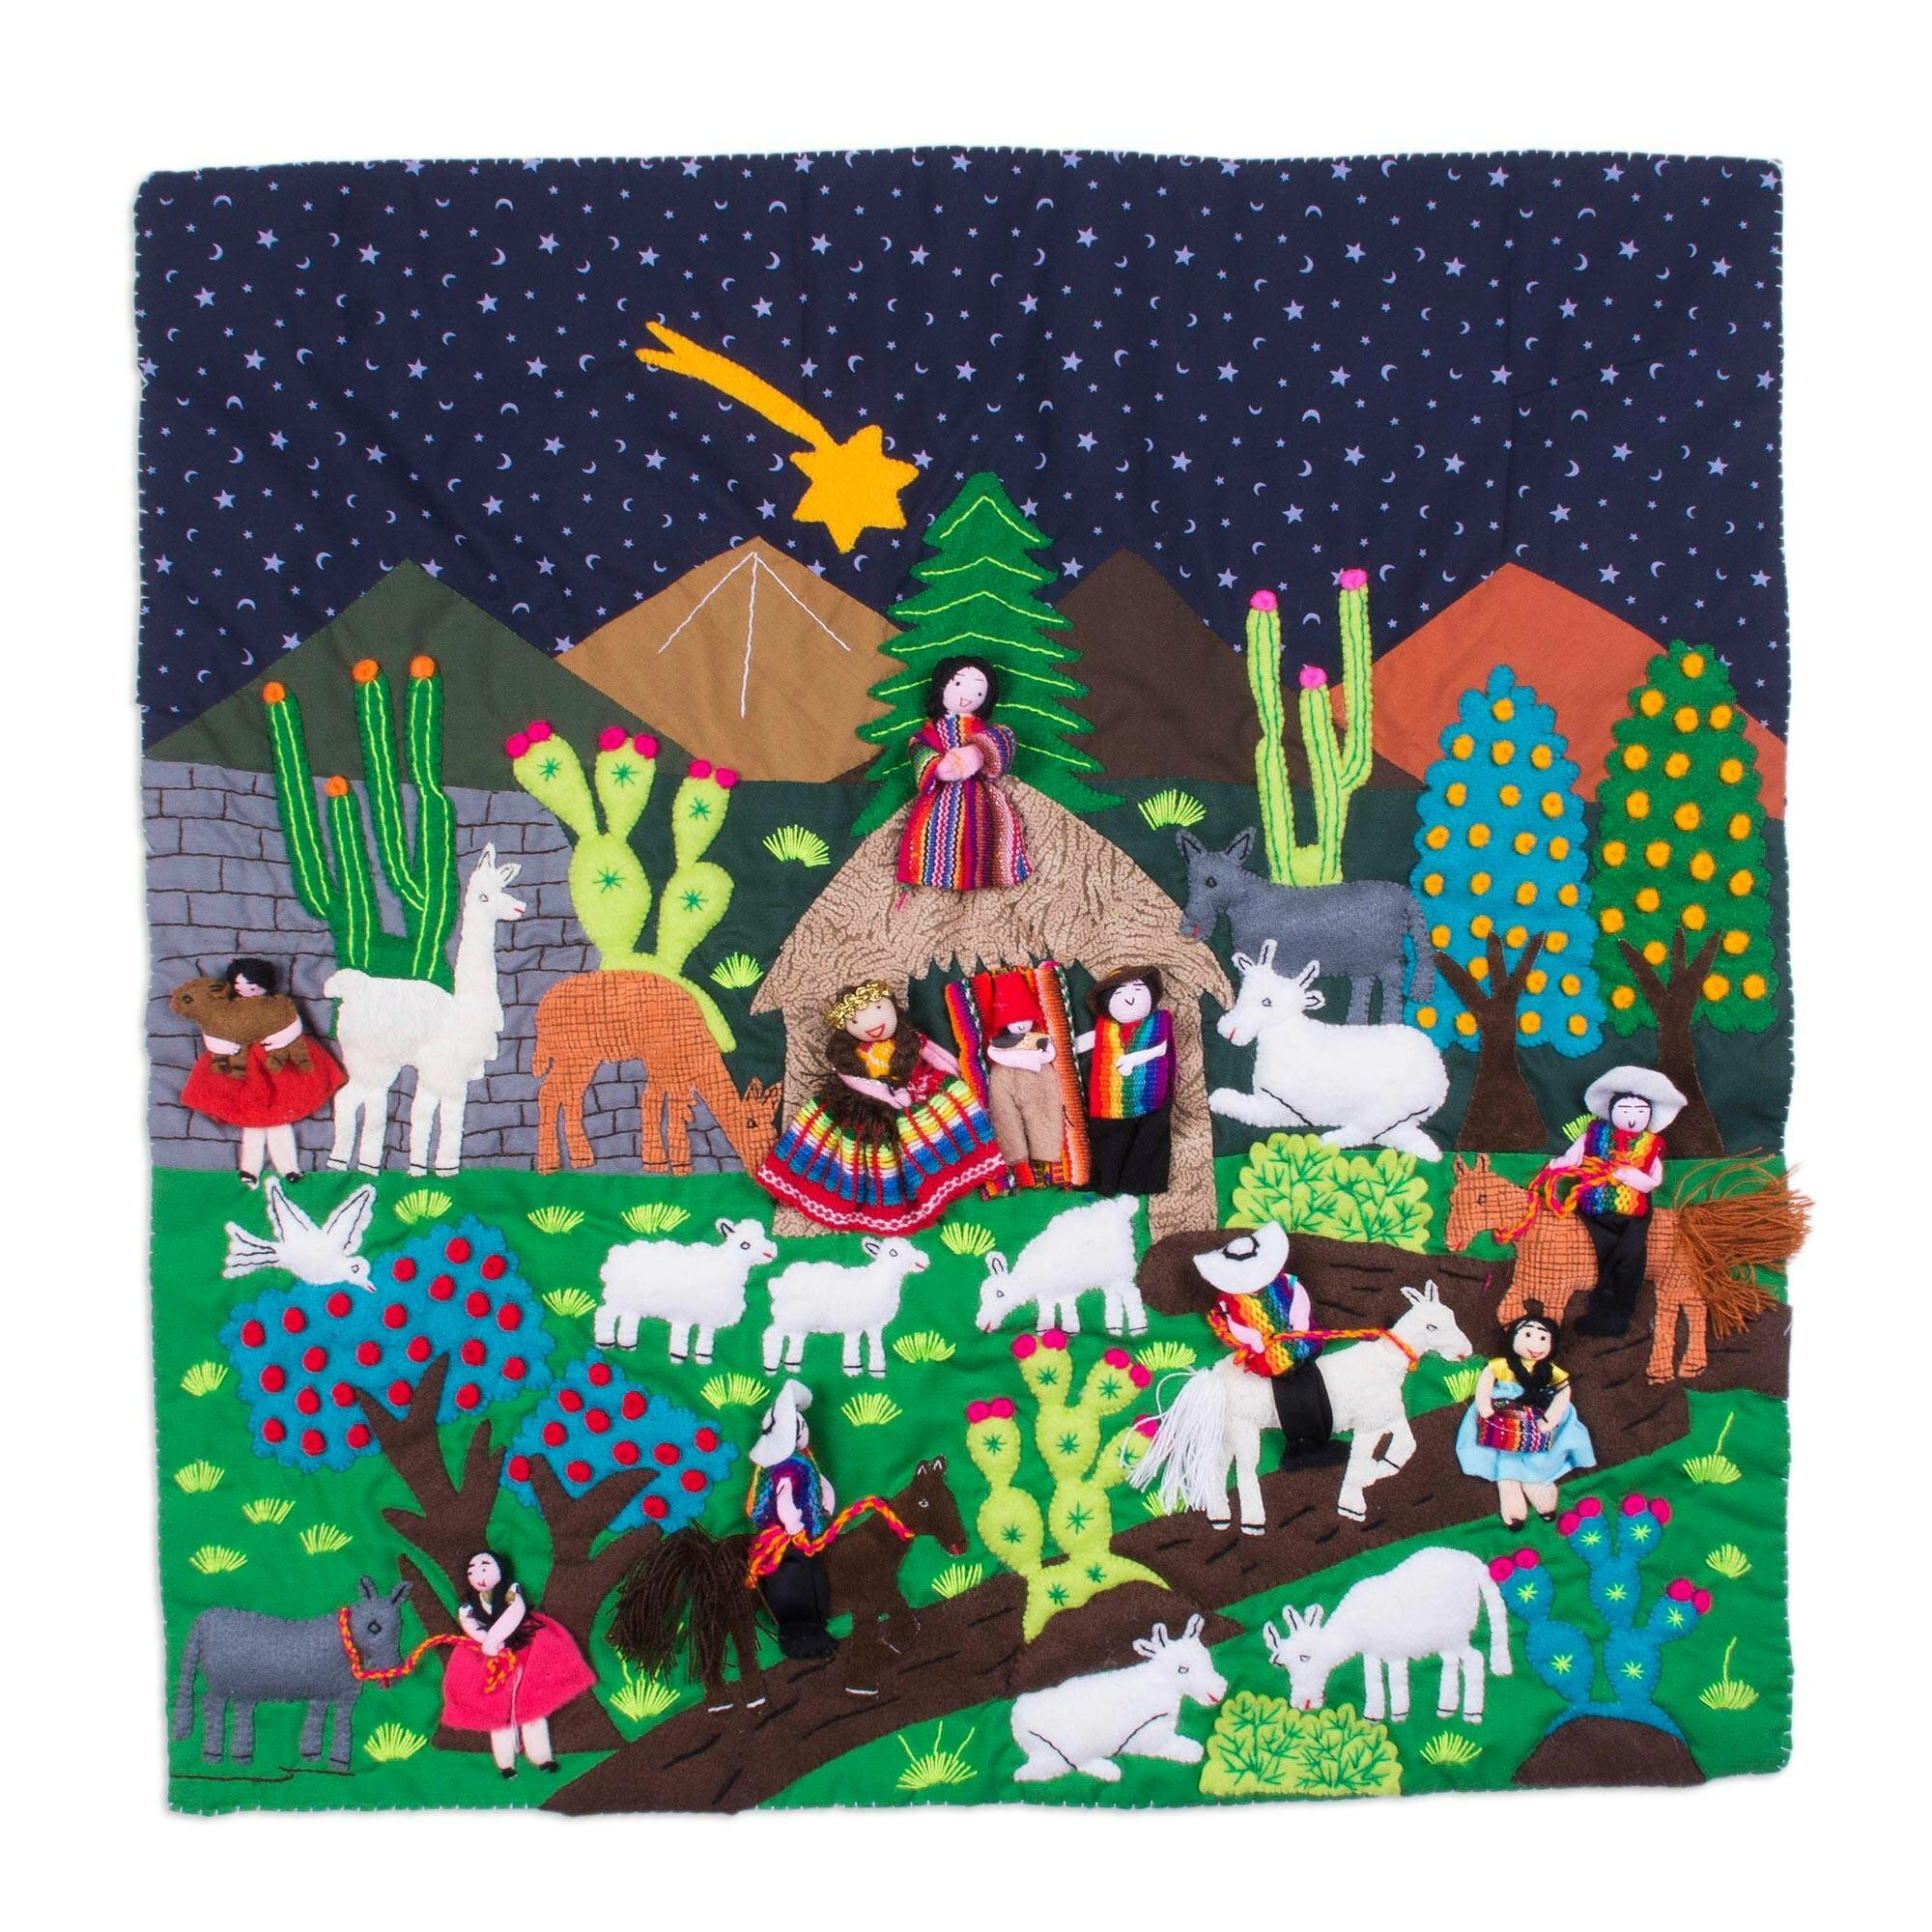 Bloomsbury Market Peru Nativity Arpillera Wall Hanging Wayfair